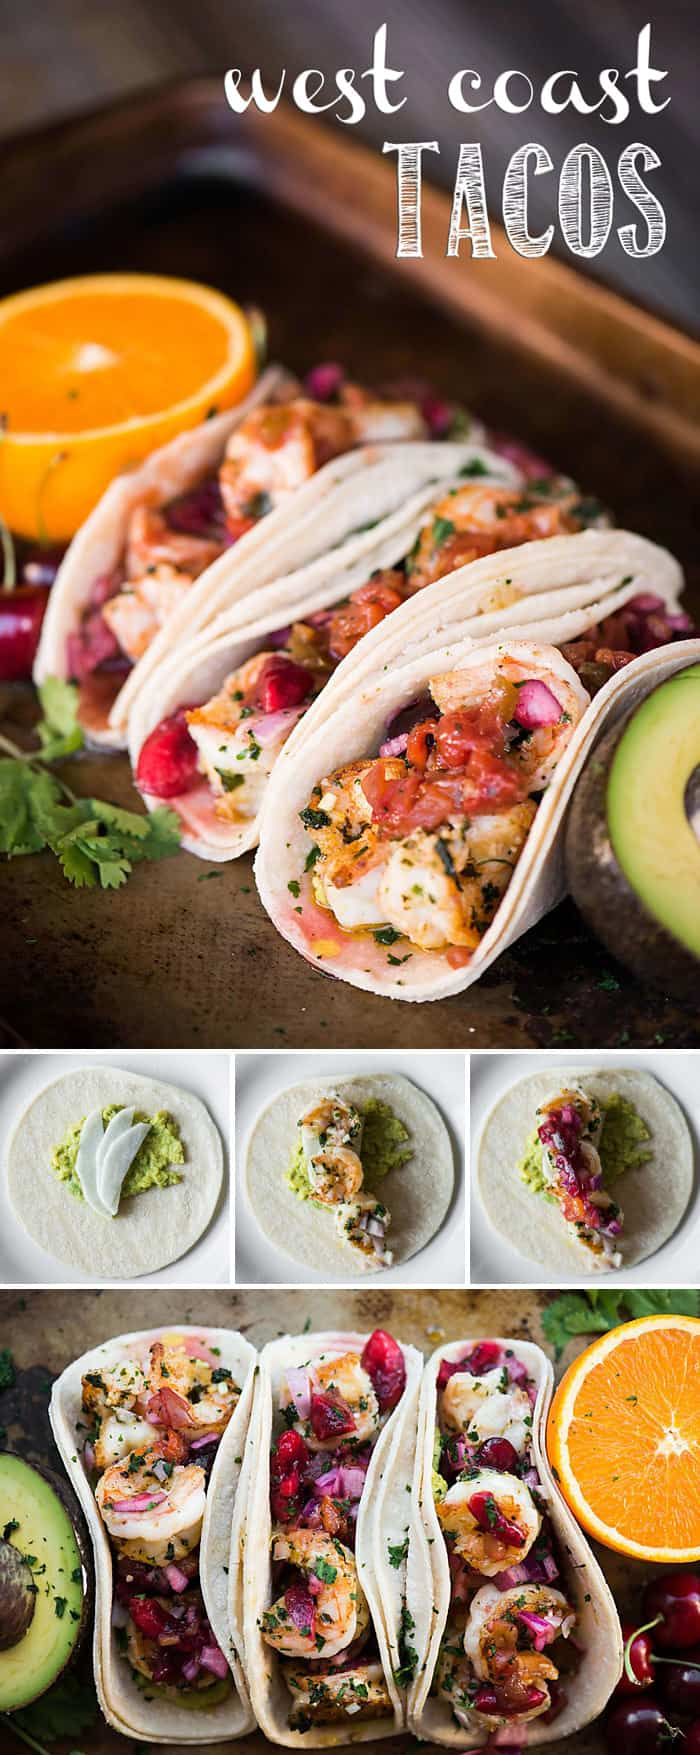 These West Coast Tacos are bursting with fresh flavors, combining orange and cherry salsa paired with avocado and your favorite protein for a tasty dinner.